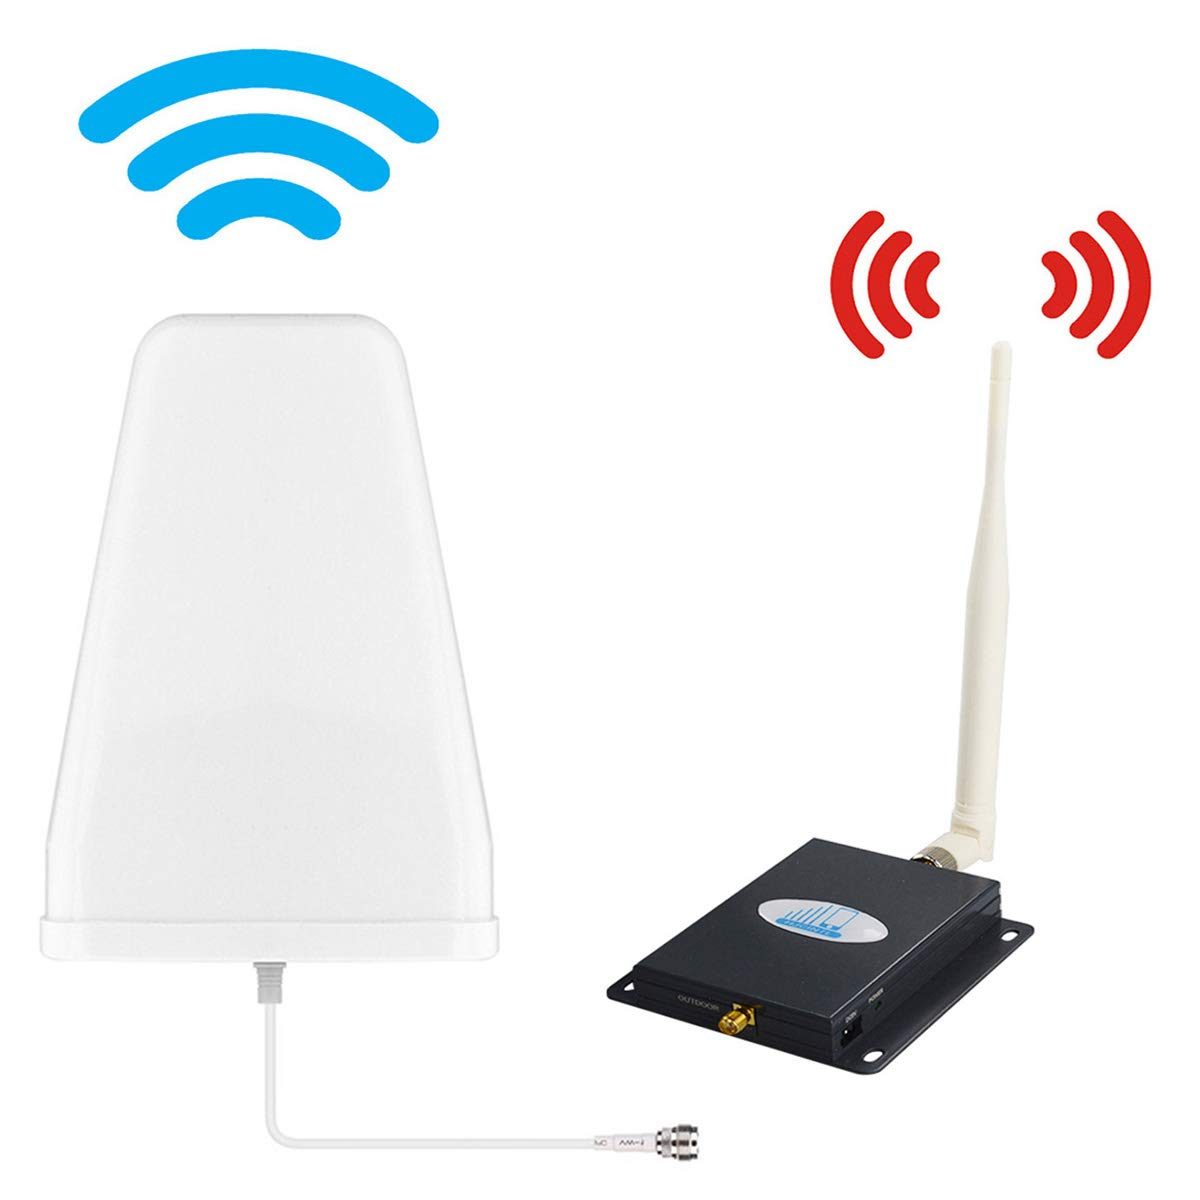 ATT Cell Phone Signal Booster 4G LTE Mobile Booster HJCINTL FDD 700Mhz Band 12/17 Mobile Signal Repeater Amplifier Kits by HJCINTL